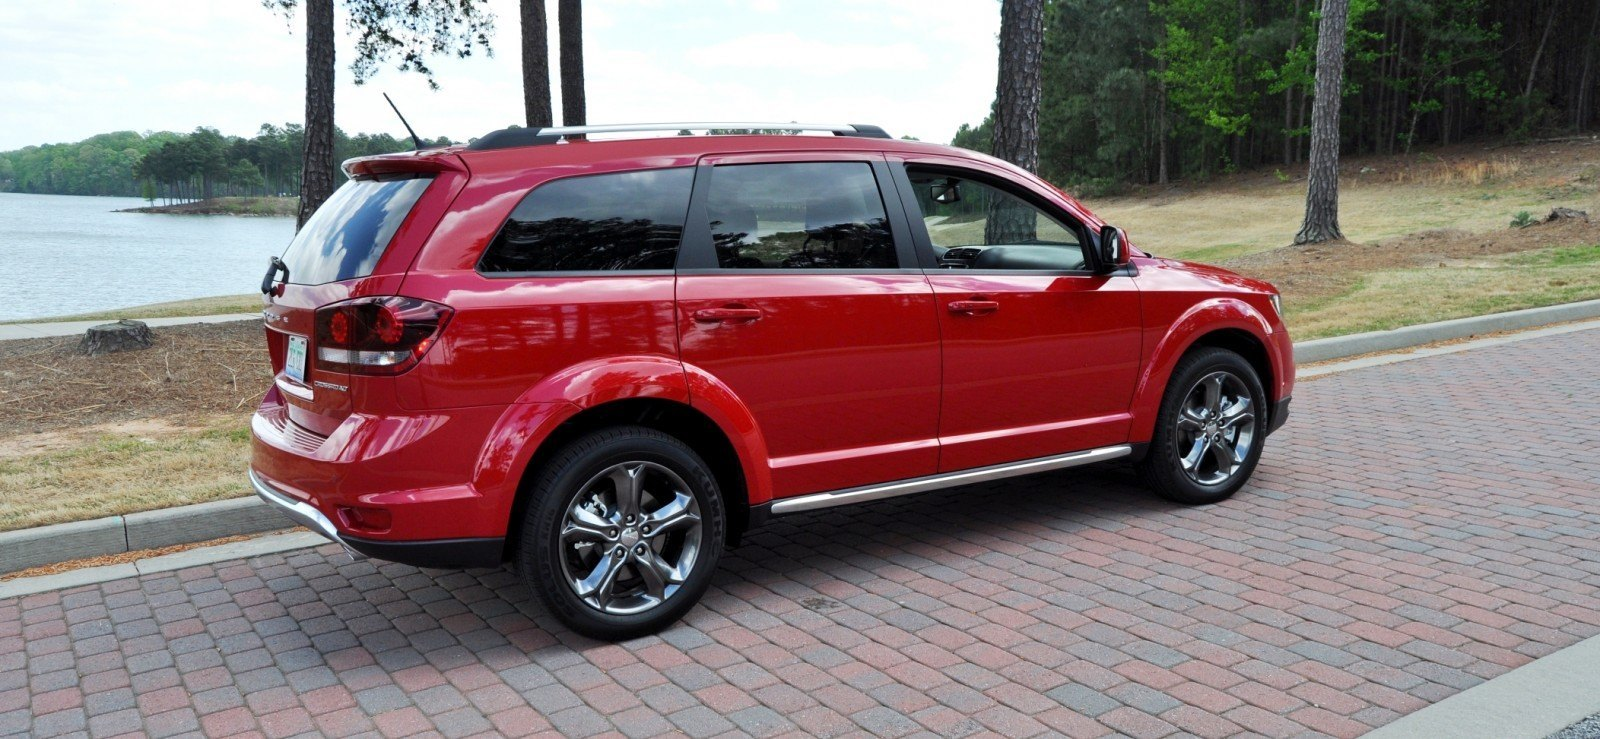 Road Test Review - 2014 Dodge Journey Crossroad - We Would Cross the Road to Avoid 11